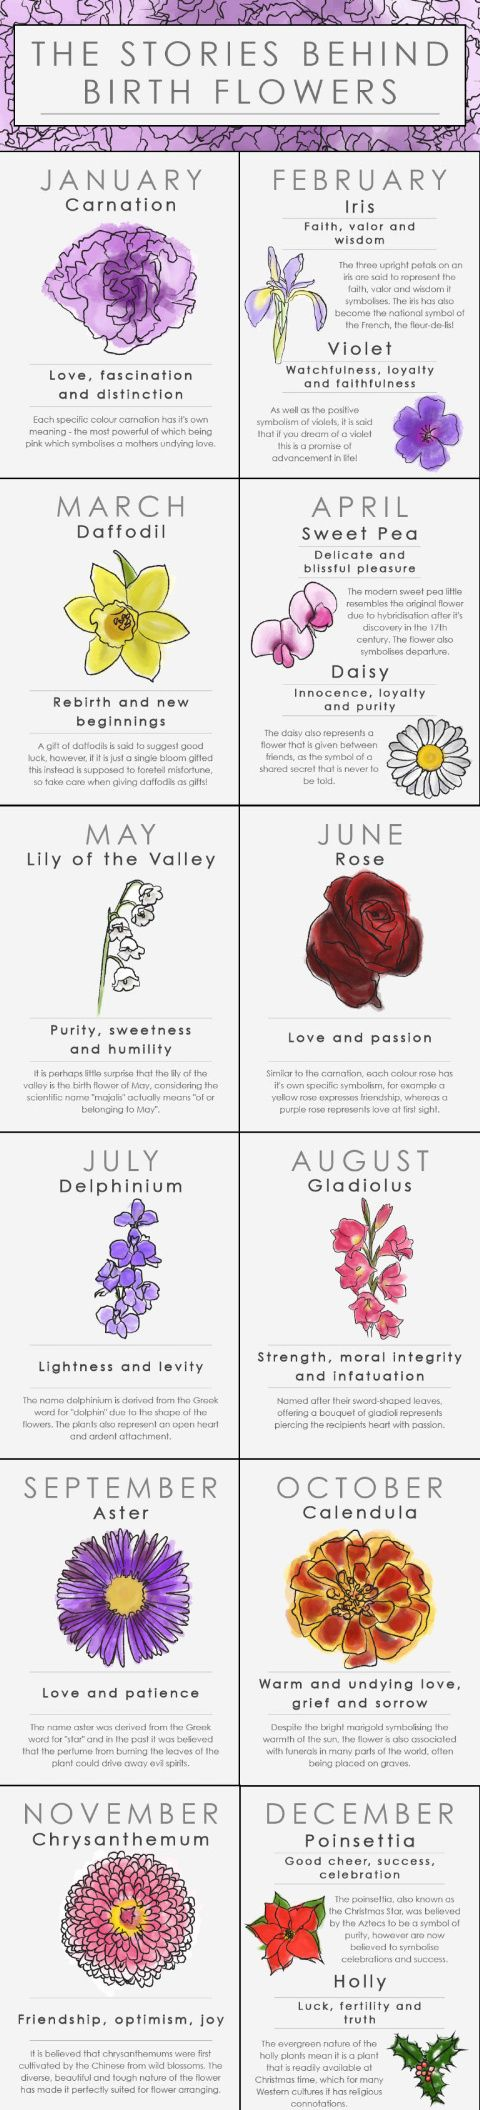 Your 'floral zodiac' may tell you a lot about yourself.